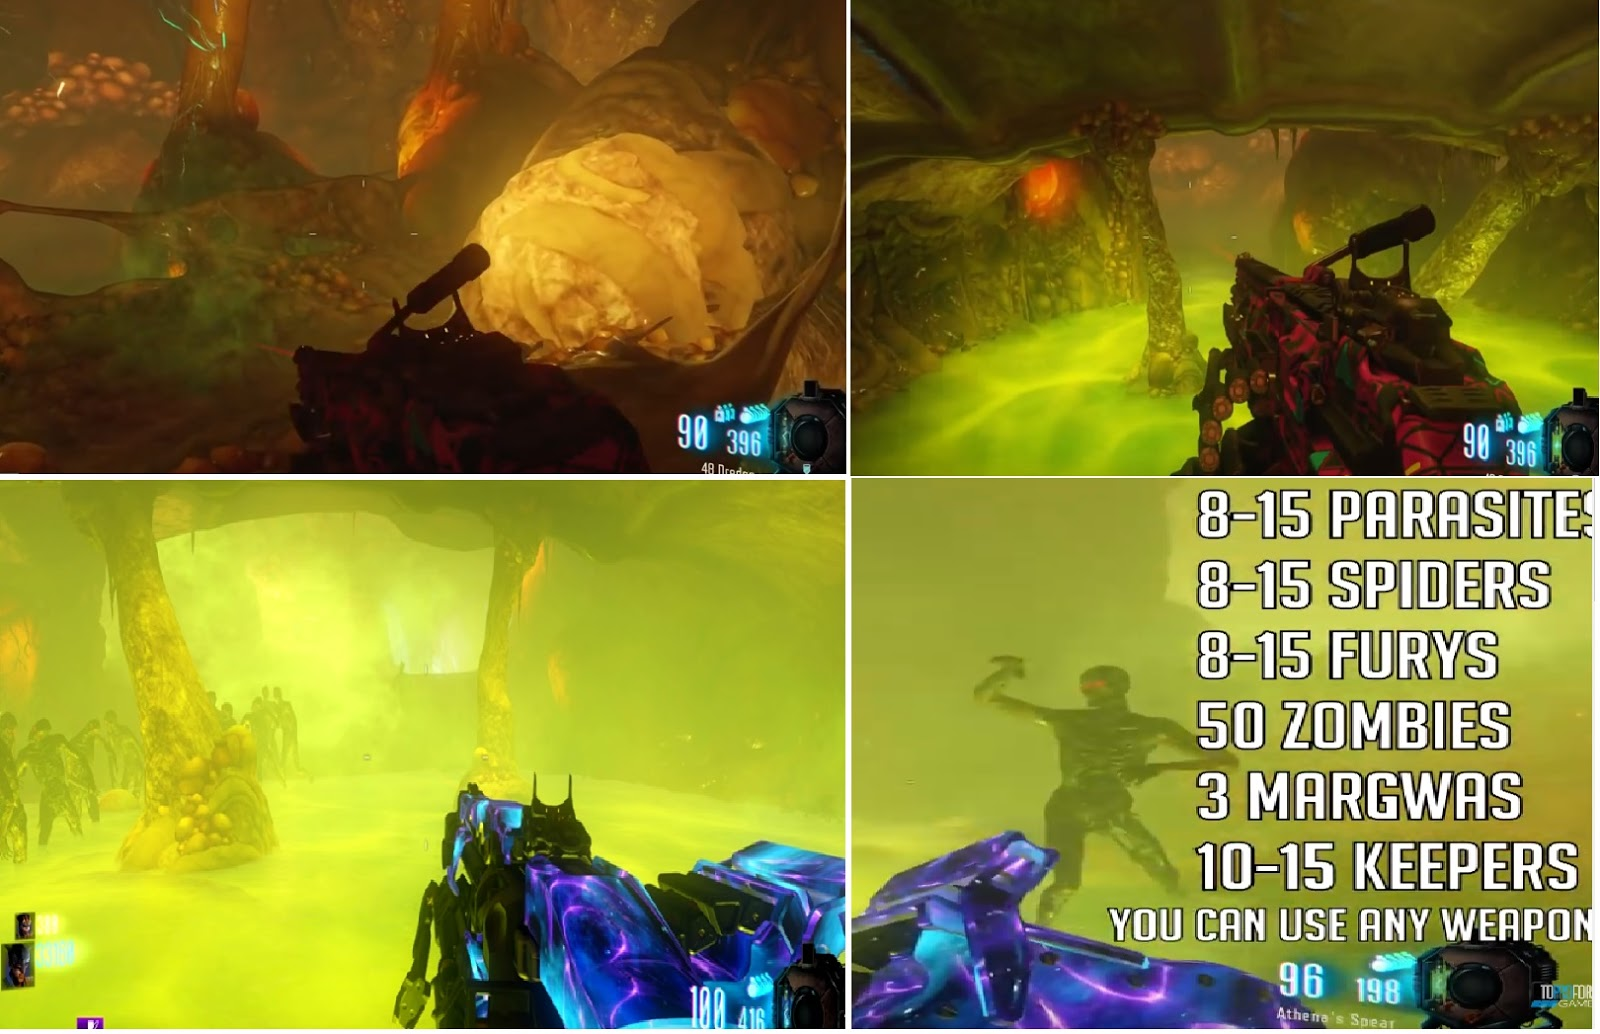 The images show when the smoke is active and when to start killing things as well as a list of the amount of each enemy you need to kill from ...